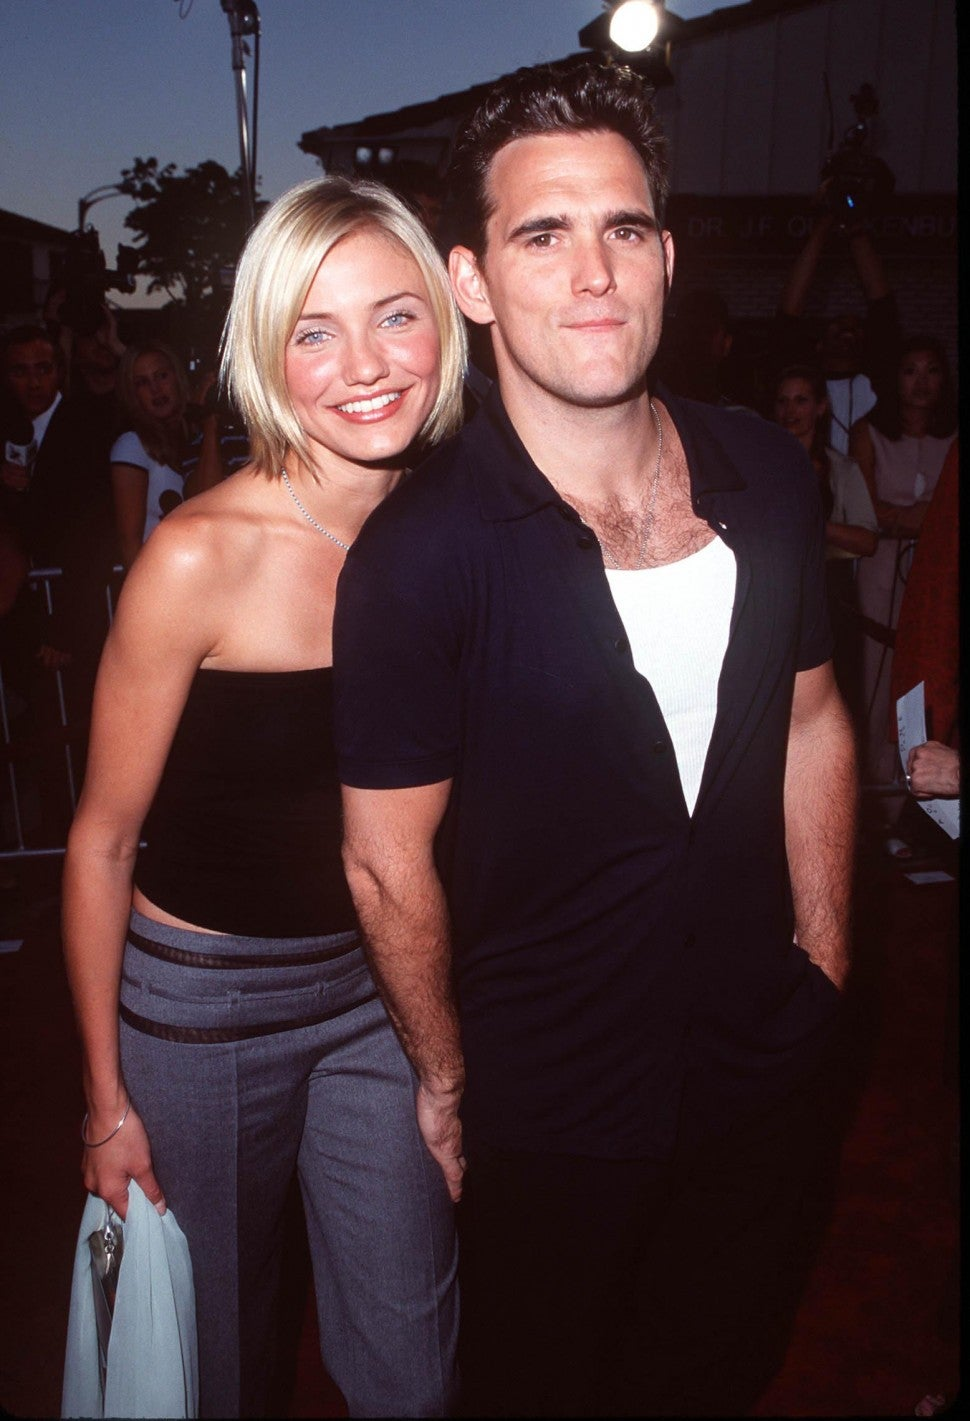 Whos dating cameron diaz who first developed the process of carbon dating